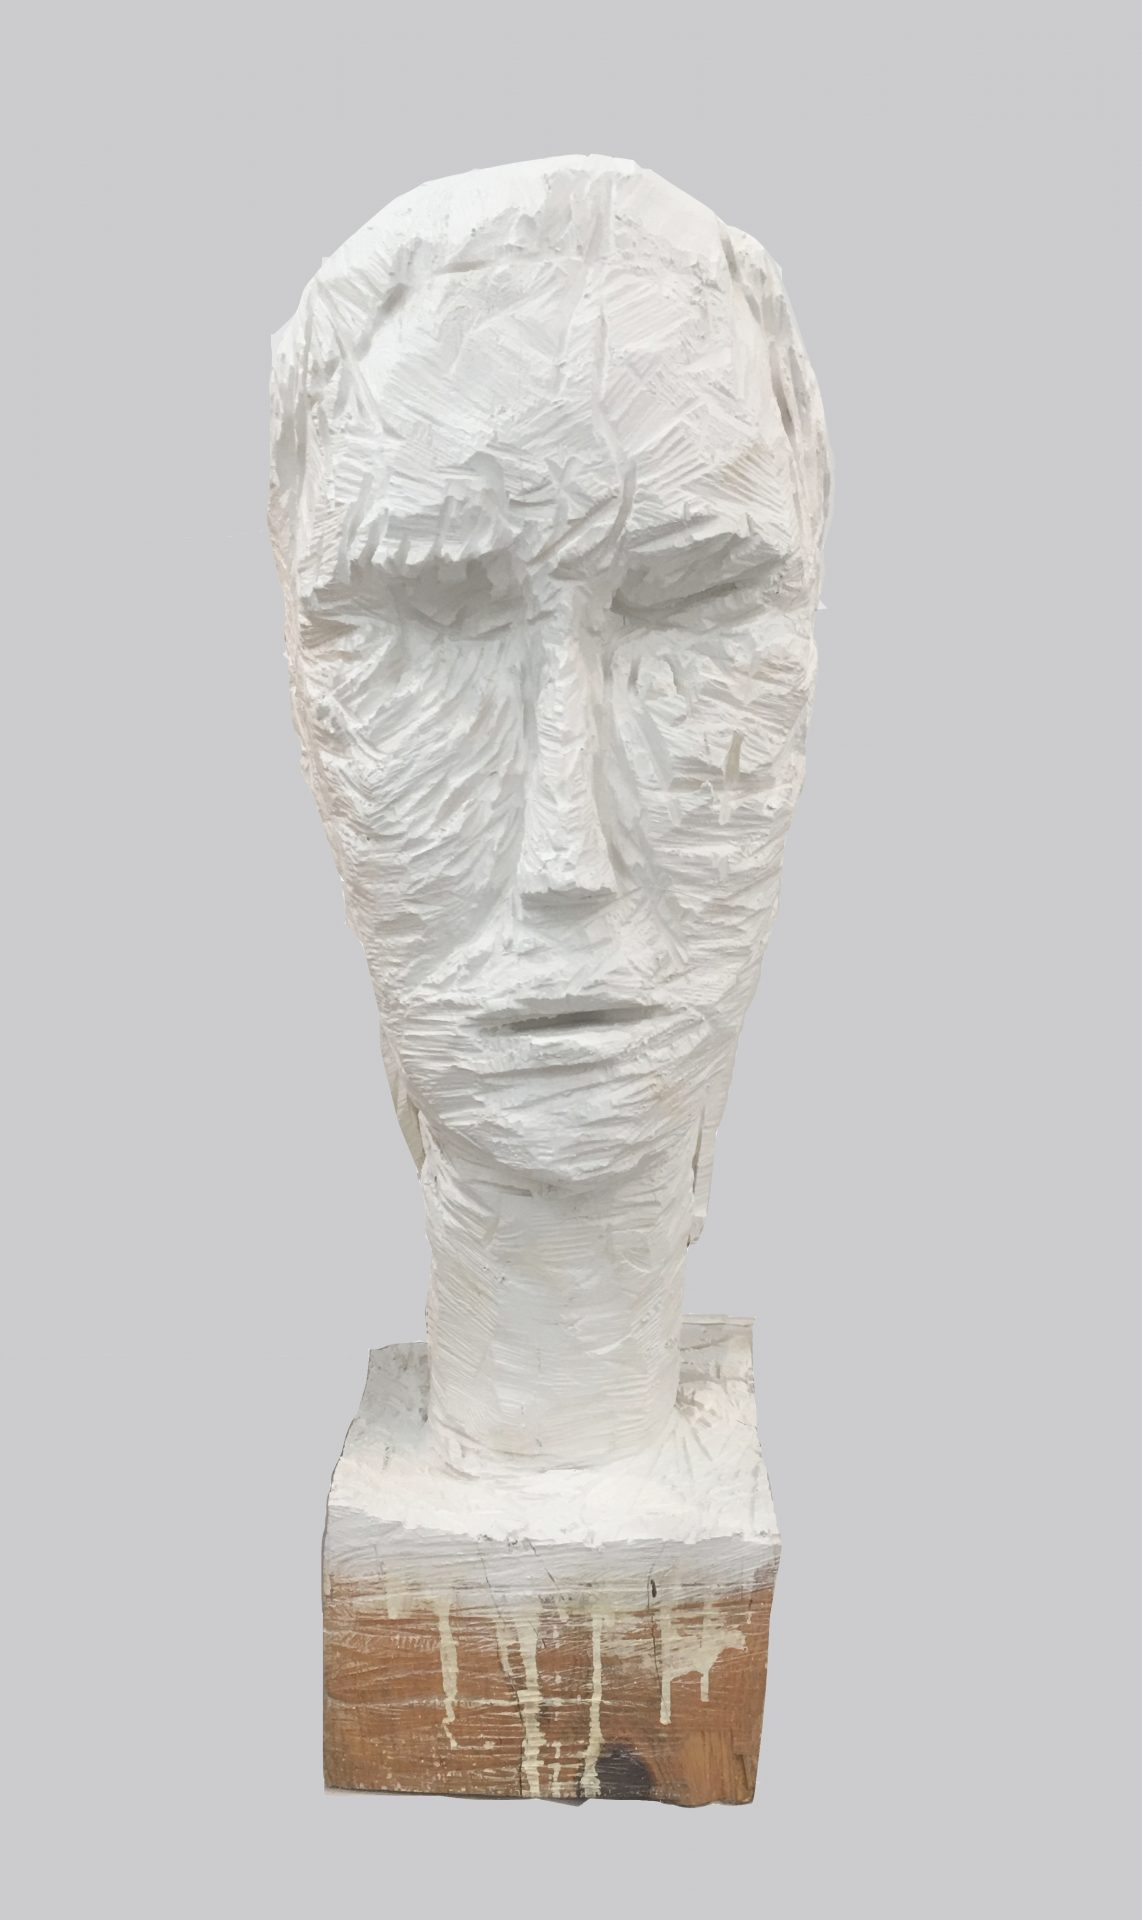 Haim Senior, White head, 2018,Painted wood, H-115 cm 8,500$, (3)